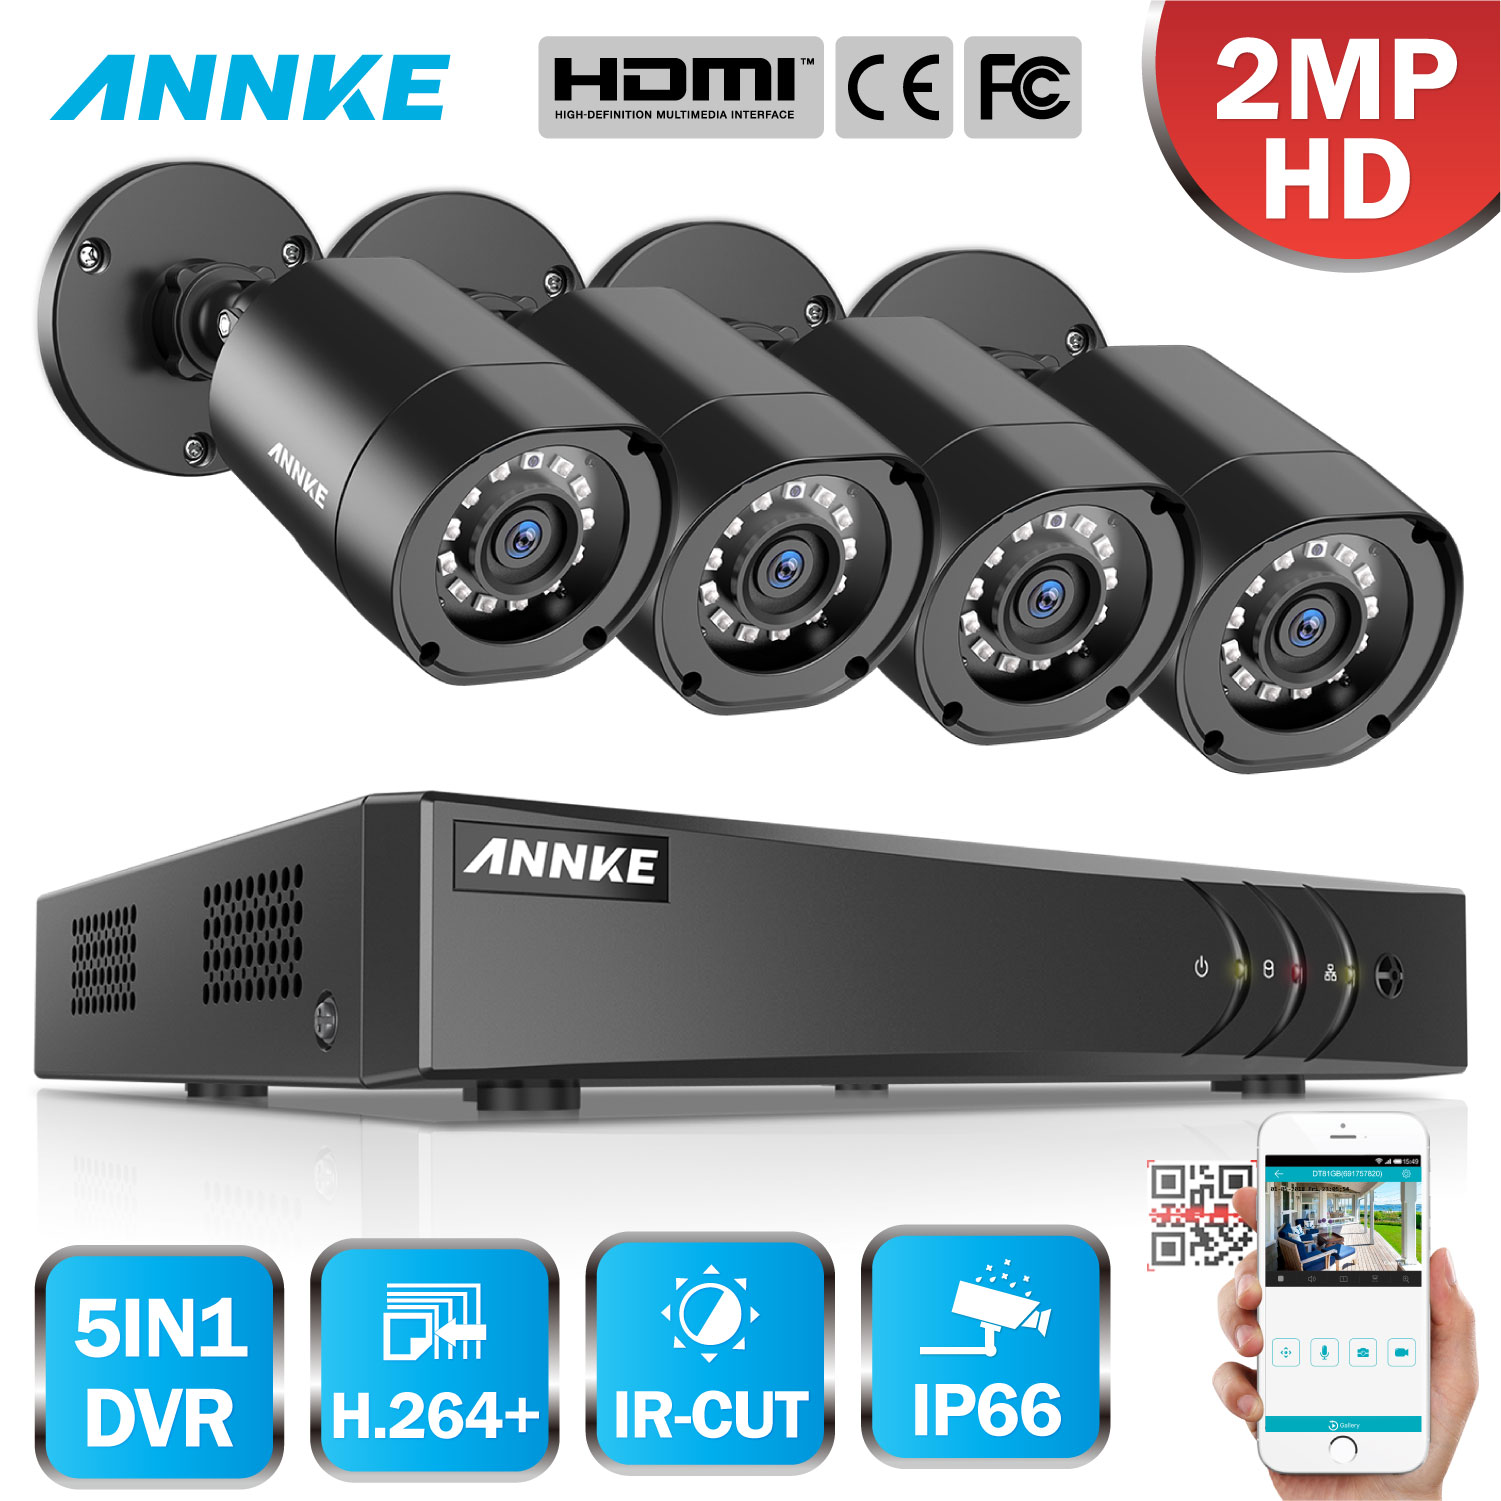 ANNKE 1080P 5in1 4CH Lite H.264+ DVR With 4PCS 2MP HD TVI Smart IR Bullet Weatherproof Cameras Security Video CCTV System KitANNKE 1080P 5in1 4CH Lite H.264+ DVR With 4PCS 2MP HD TVI Smart IR Bullet Weatherproof Cameras Security Video CCTV System Kit